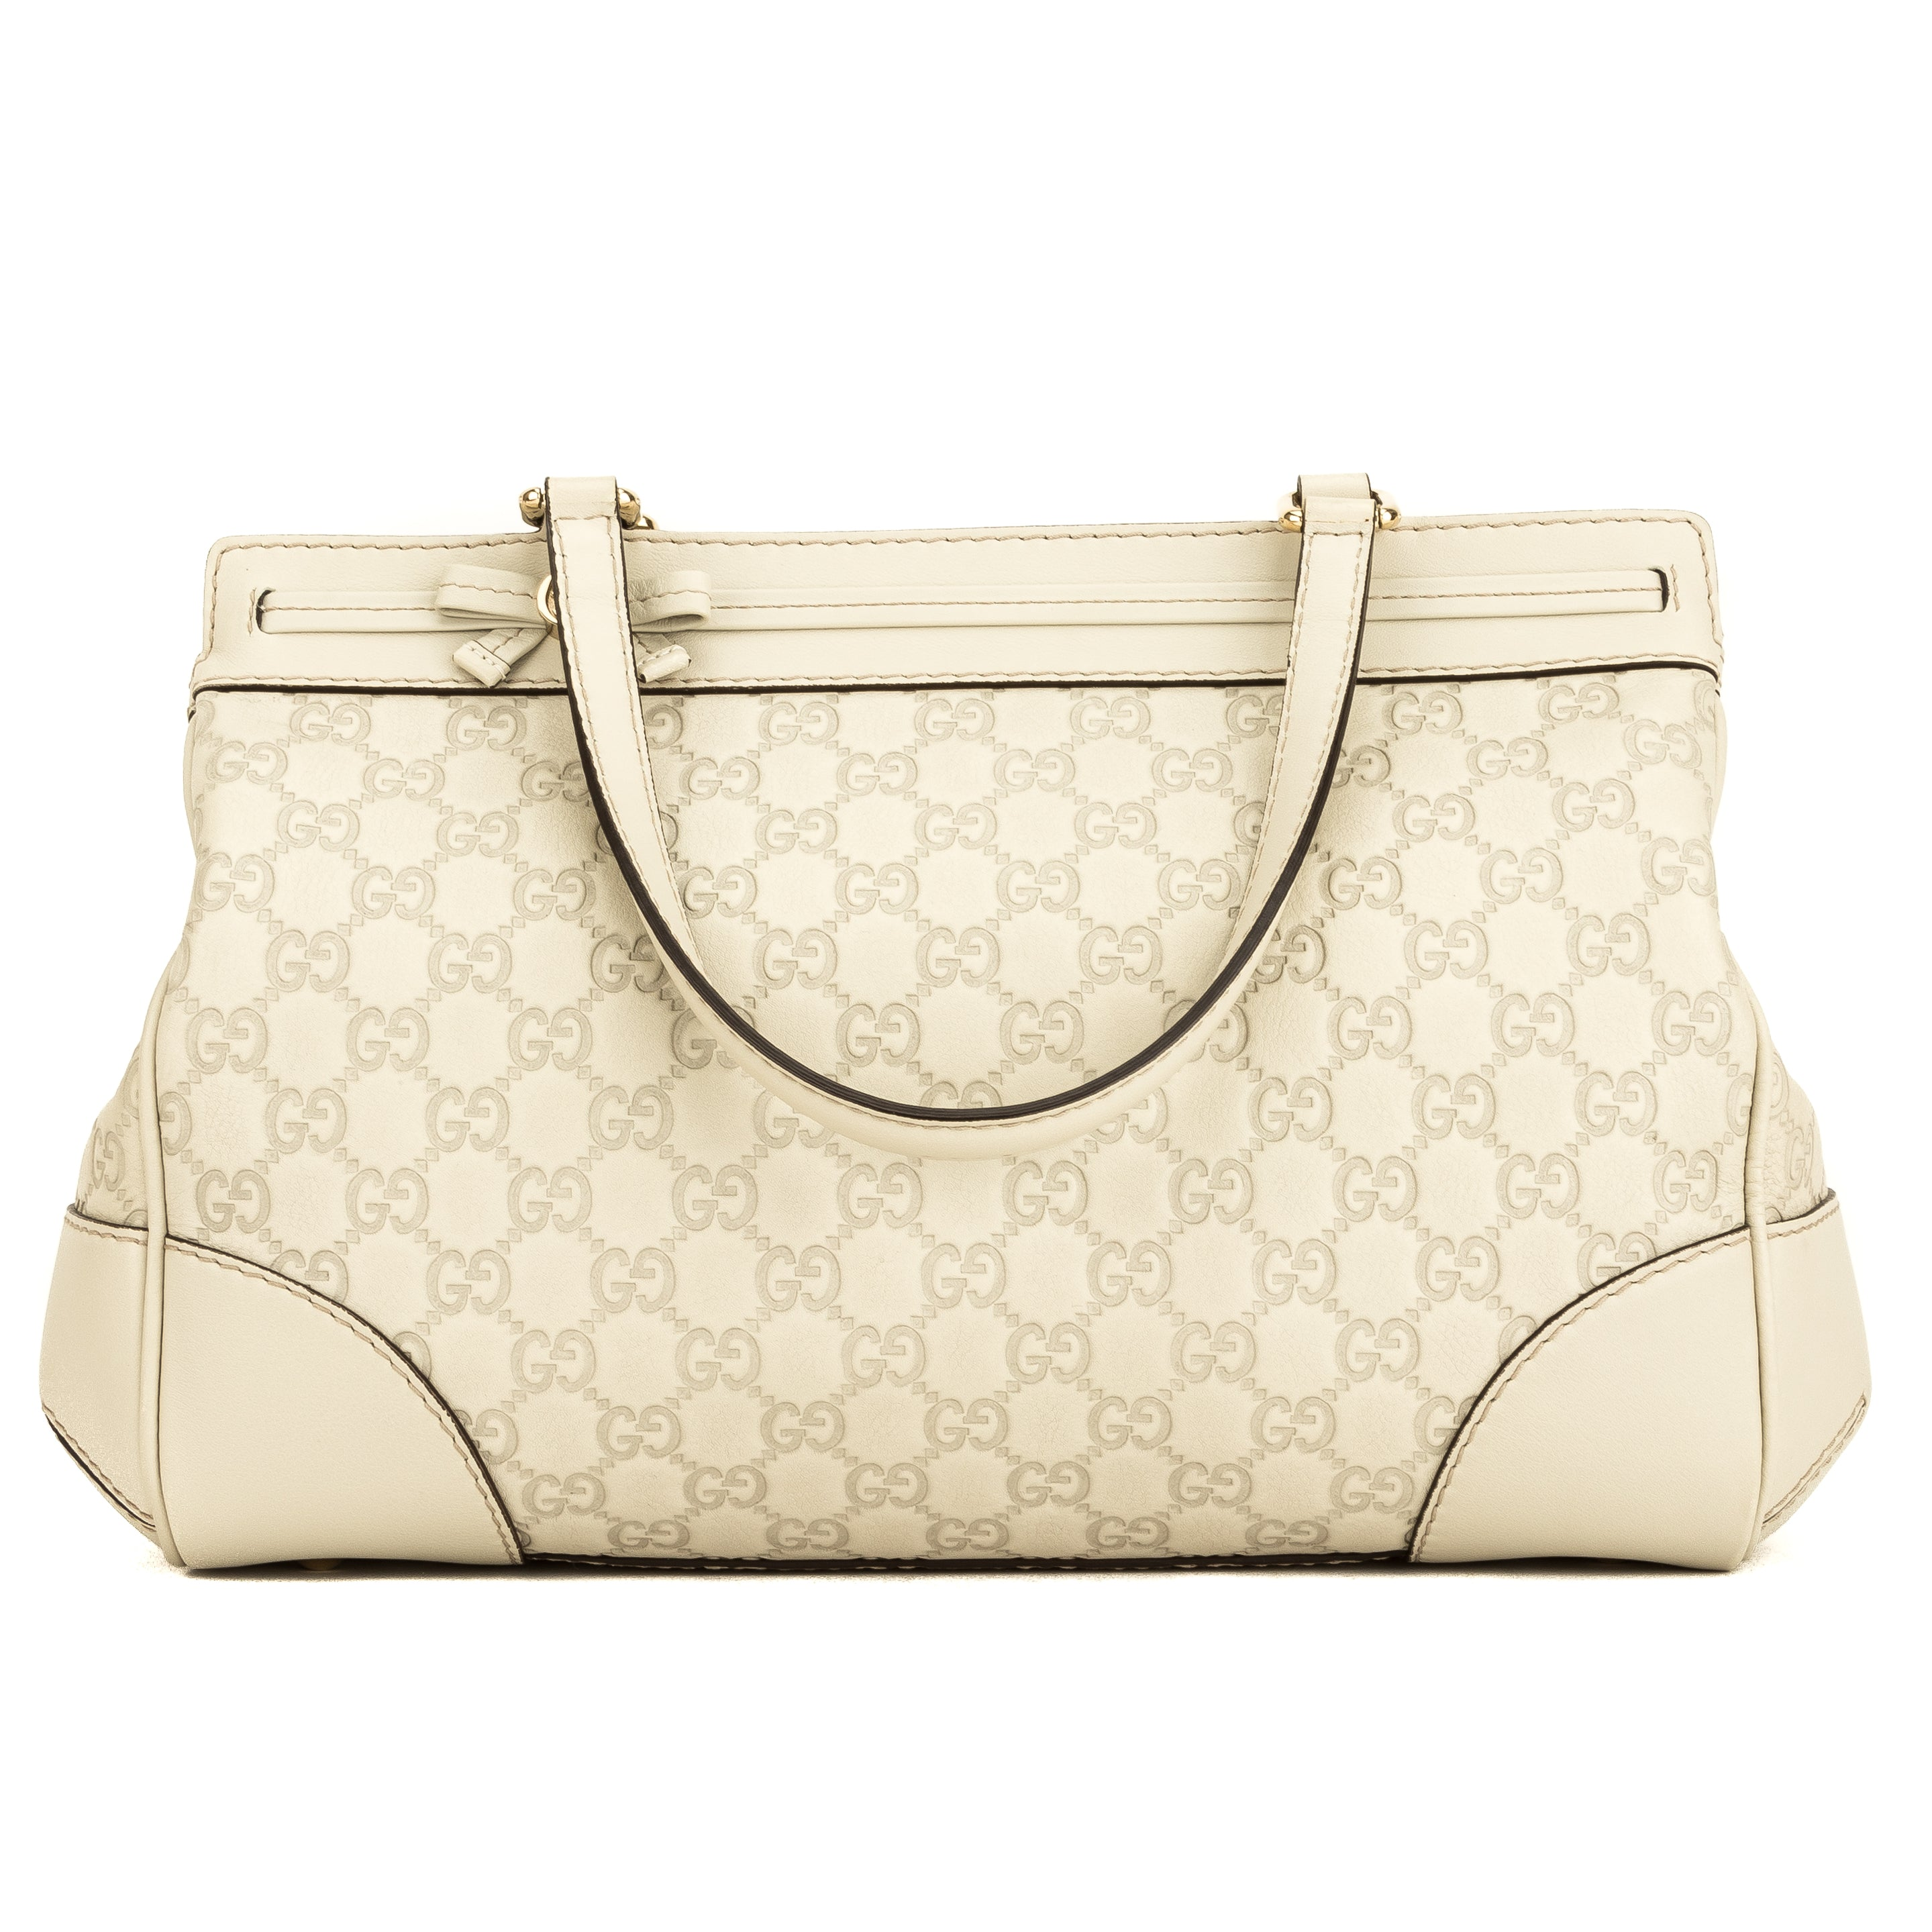 be0ee85d6795 Gucci Beige Mayfair Guccissima Tote Bag (4047013) - 4047013   LuxeDH